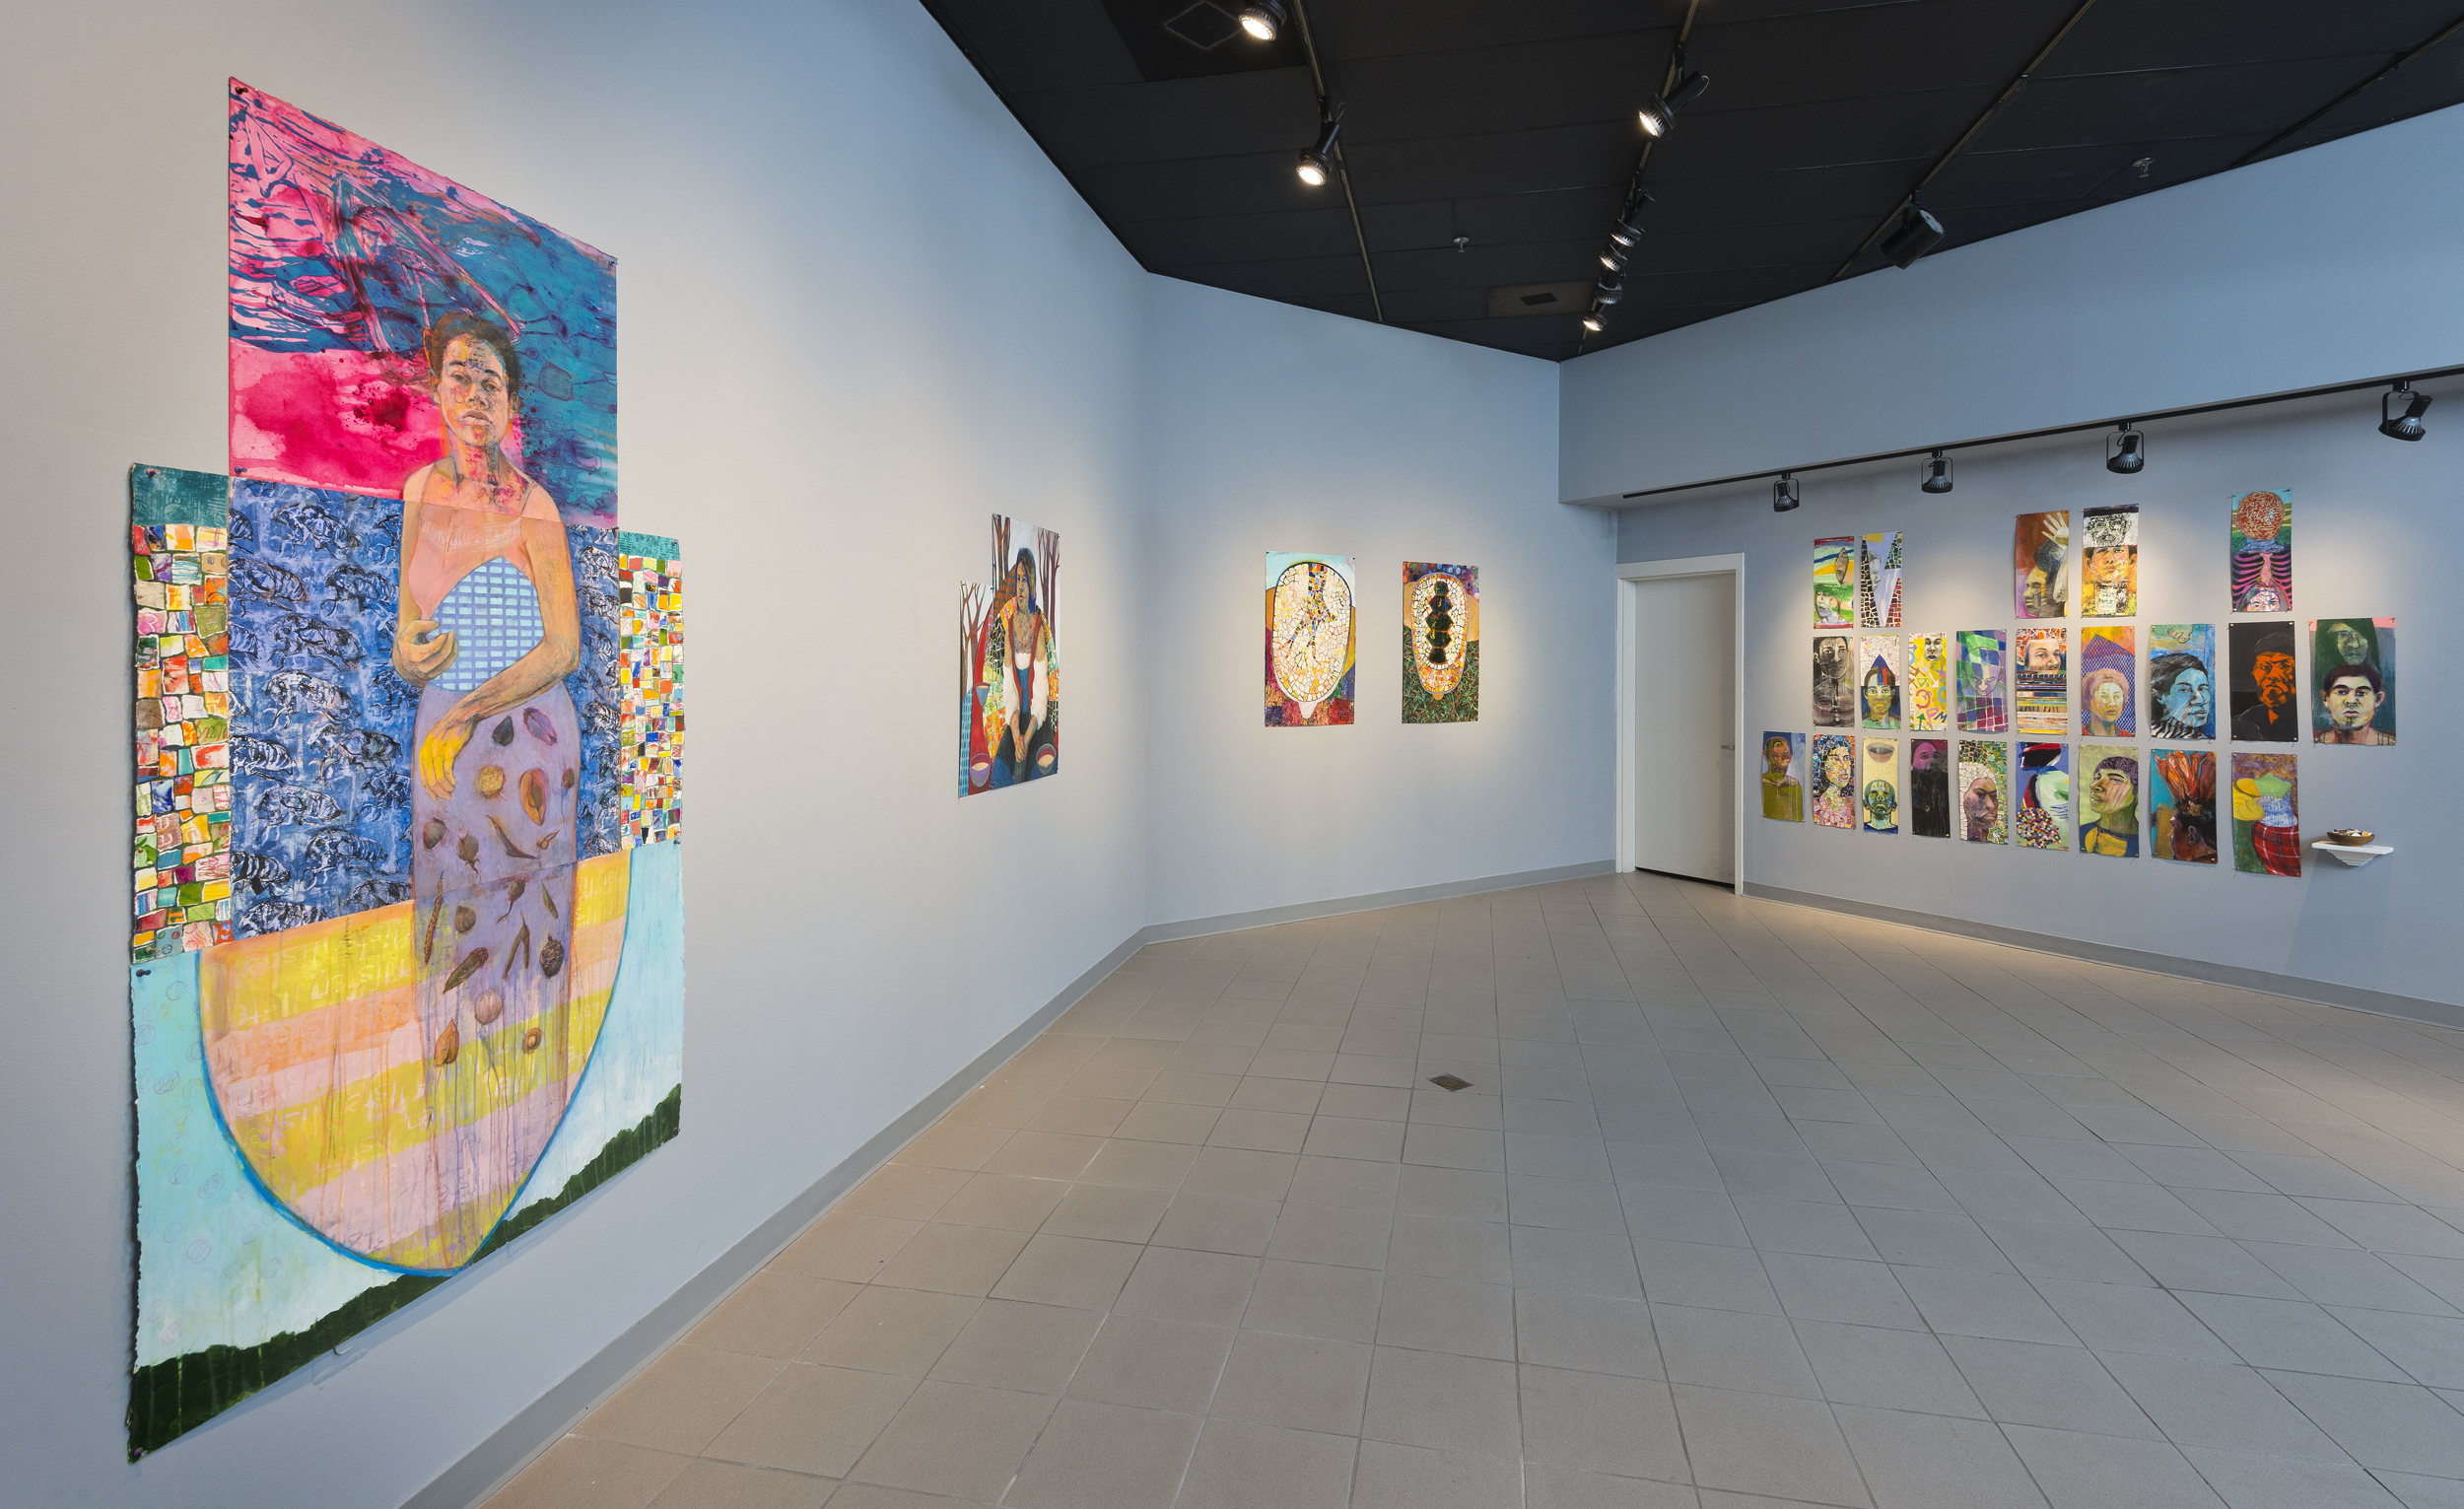 color coded, portraits, installation, Gina pierleoni, color, figures